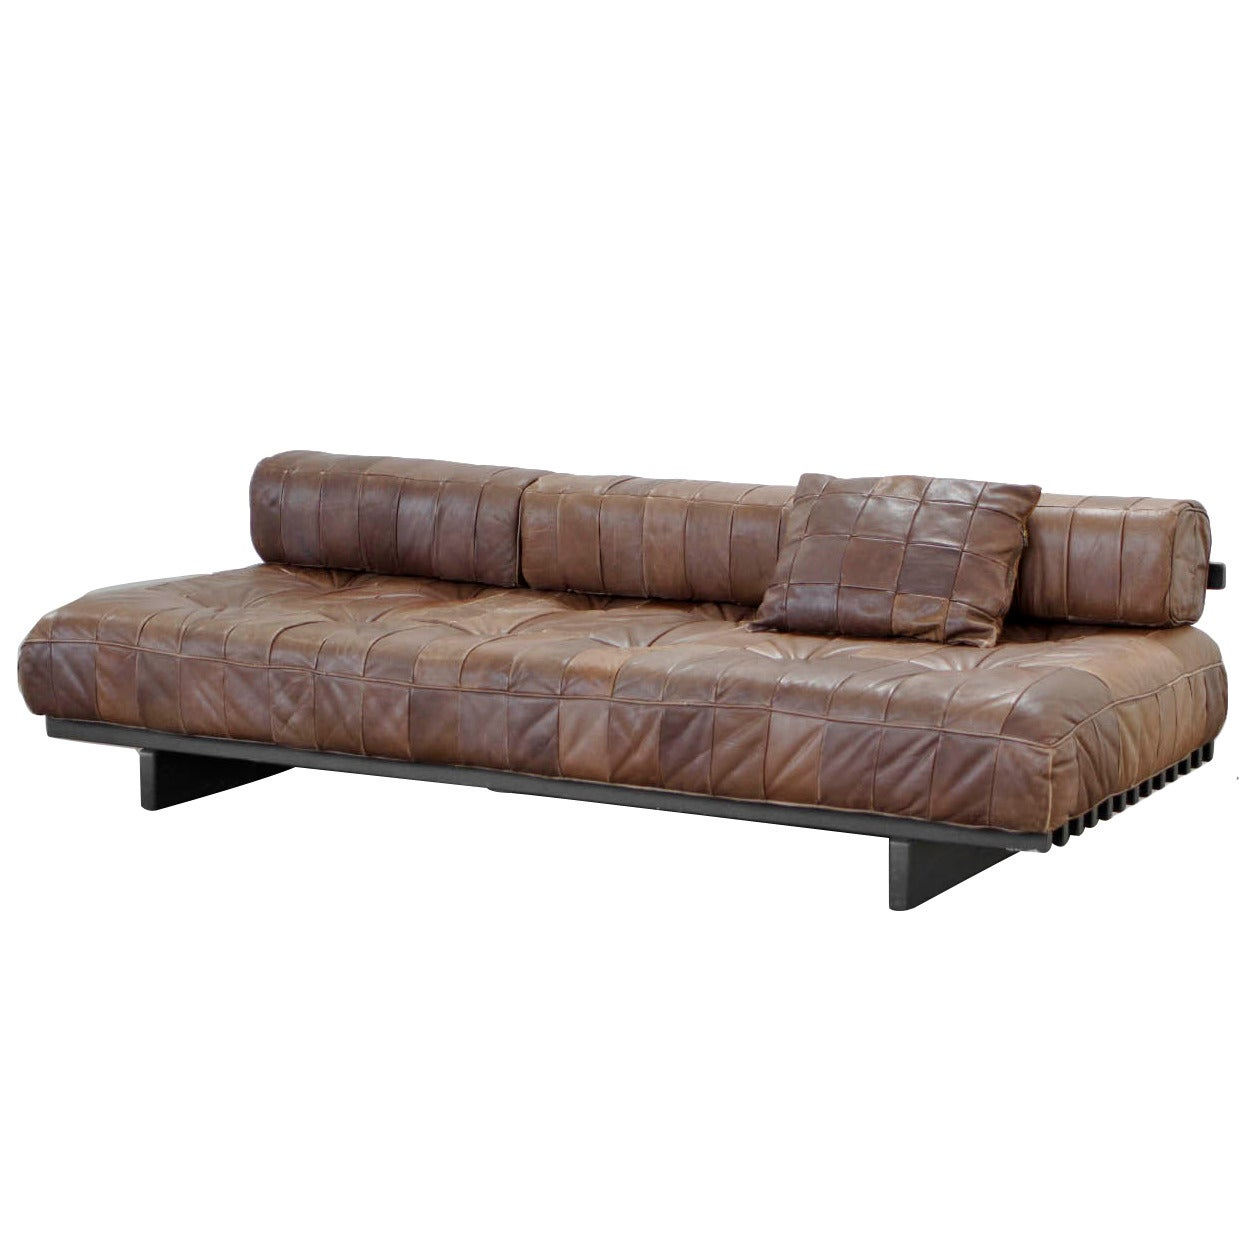 Classic daybed sofa by de sede ds 80 1972 at 1stdibs for Classic loveseat